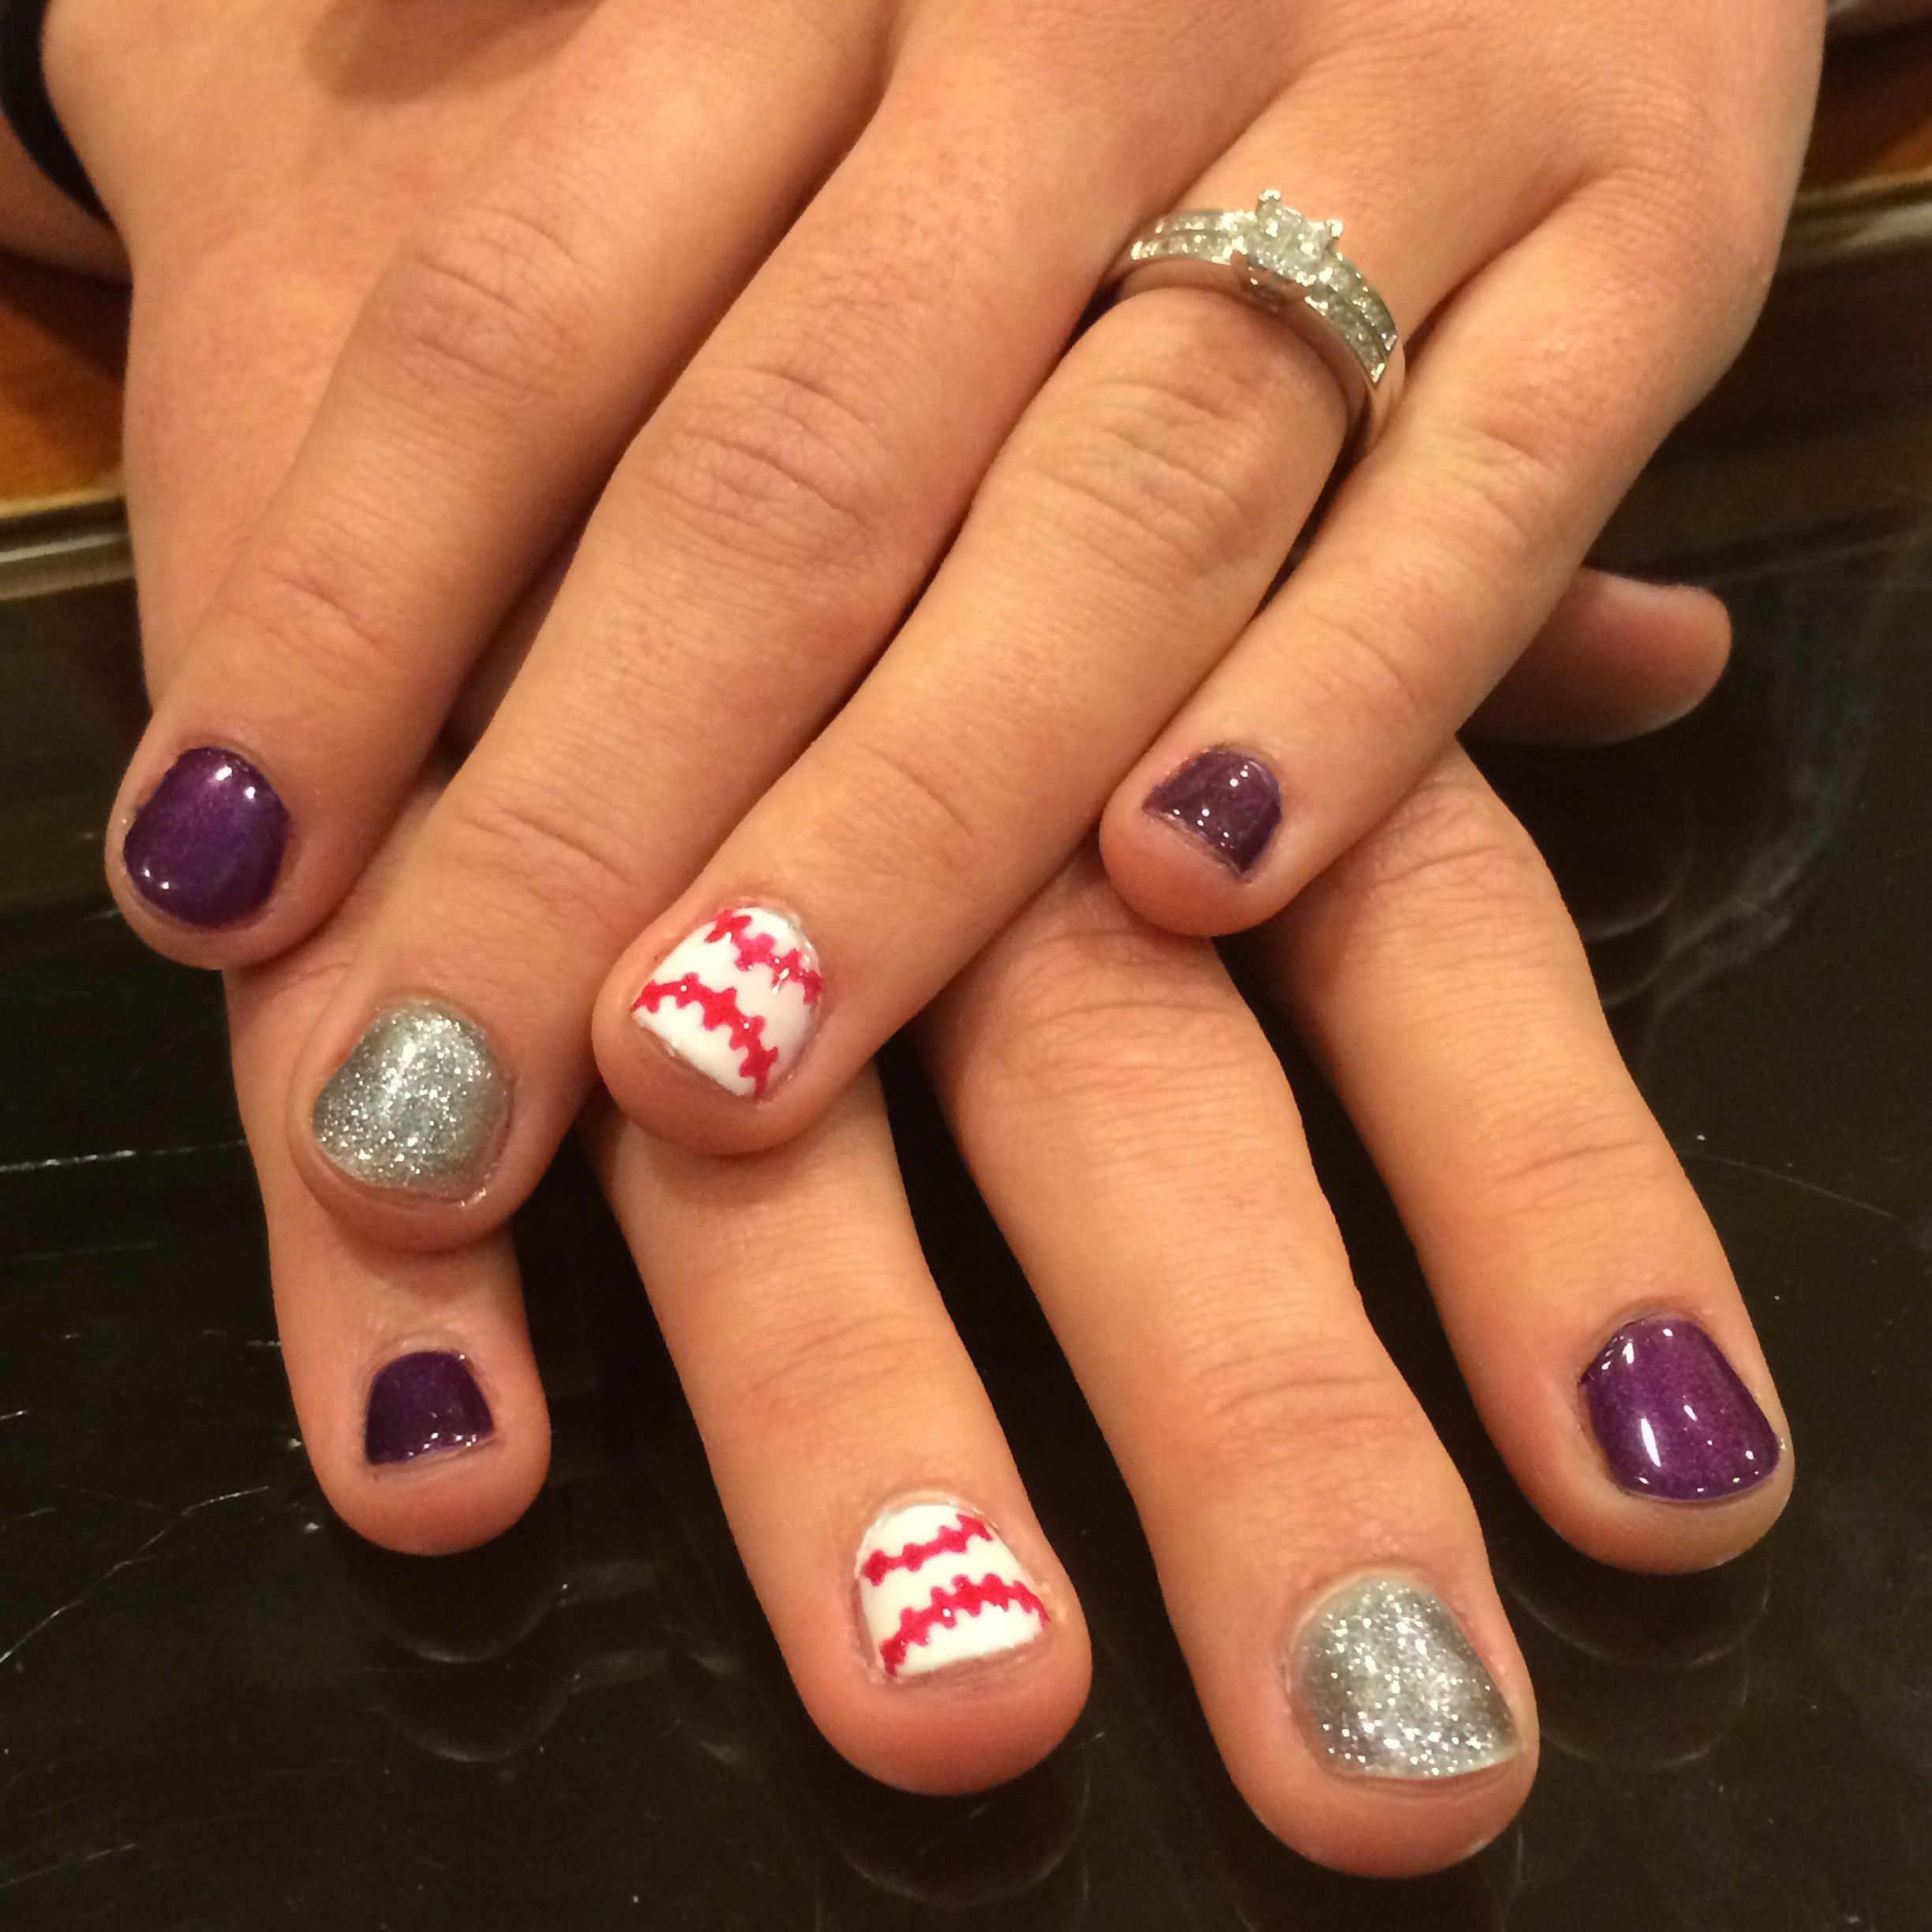 Colorado Rockies baseball nails | Hair, Nails, Shoes <3 | Pinterest ...